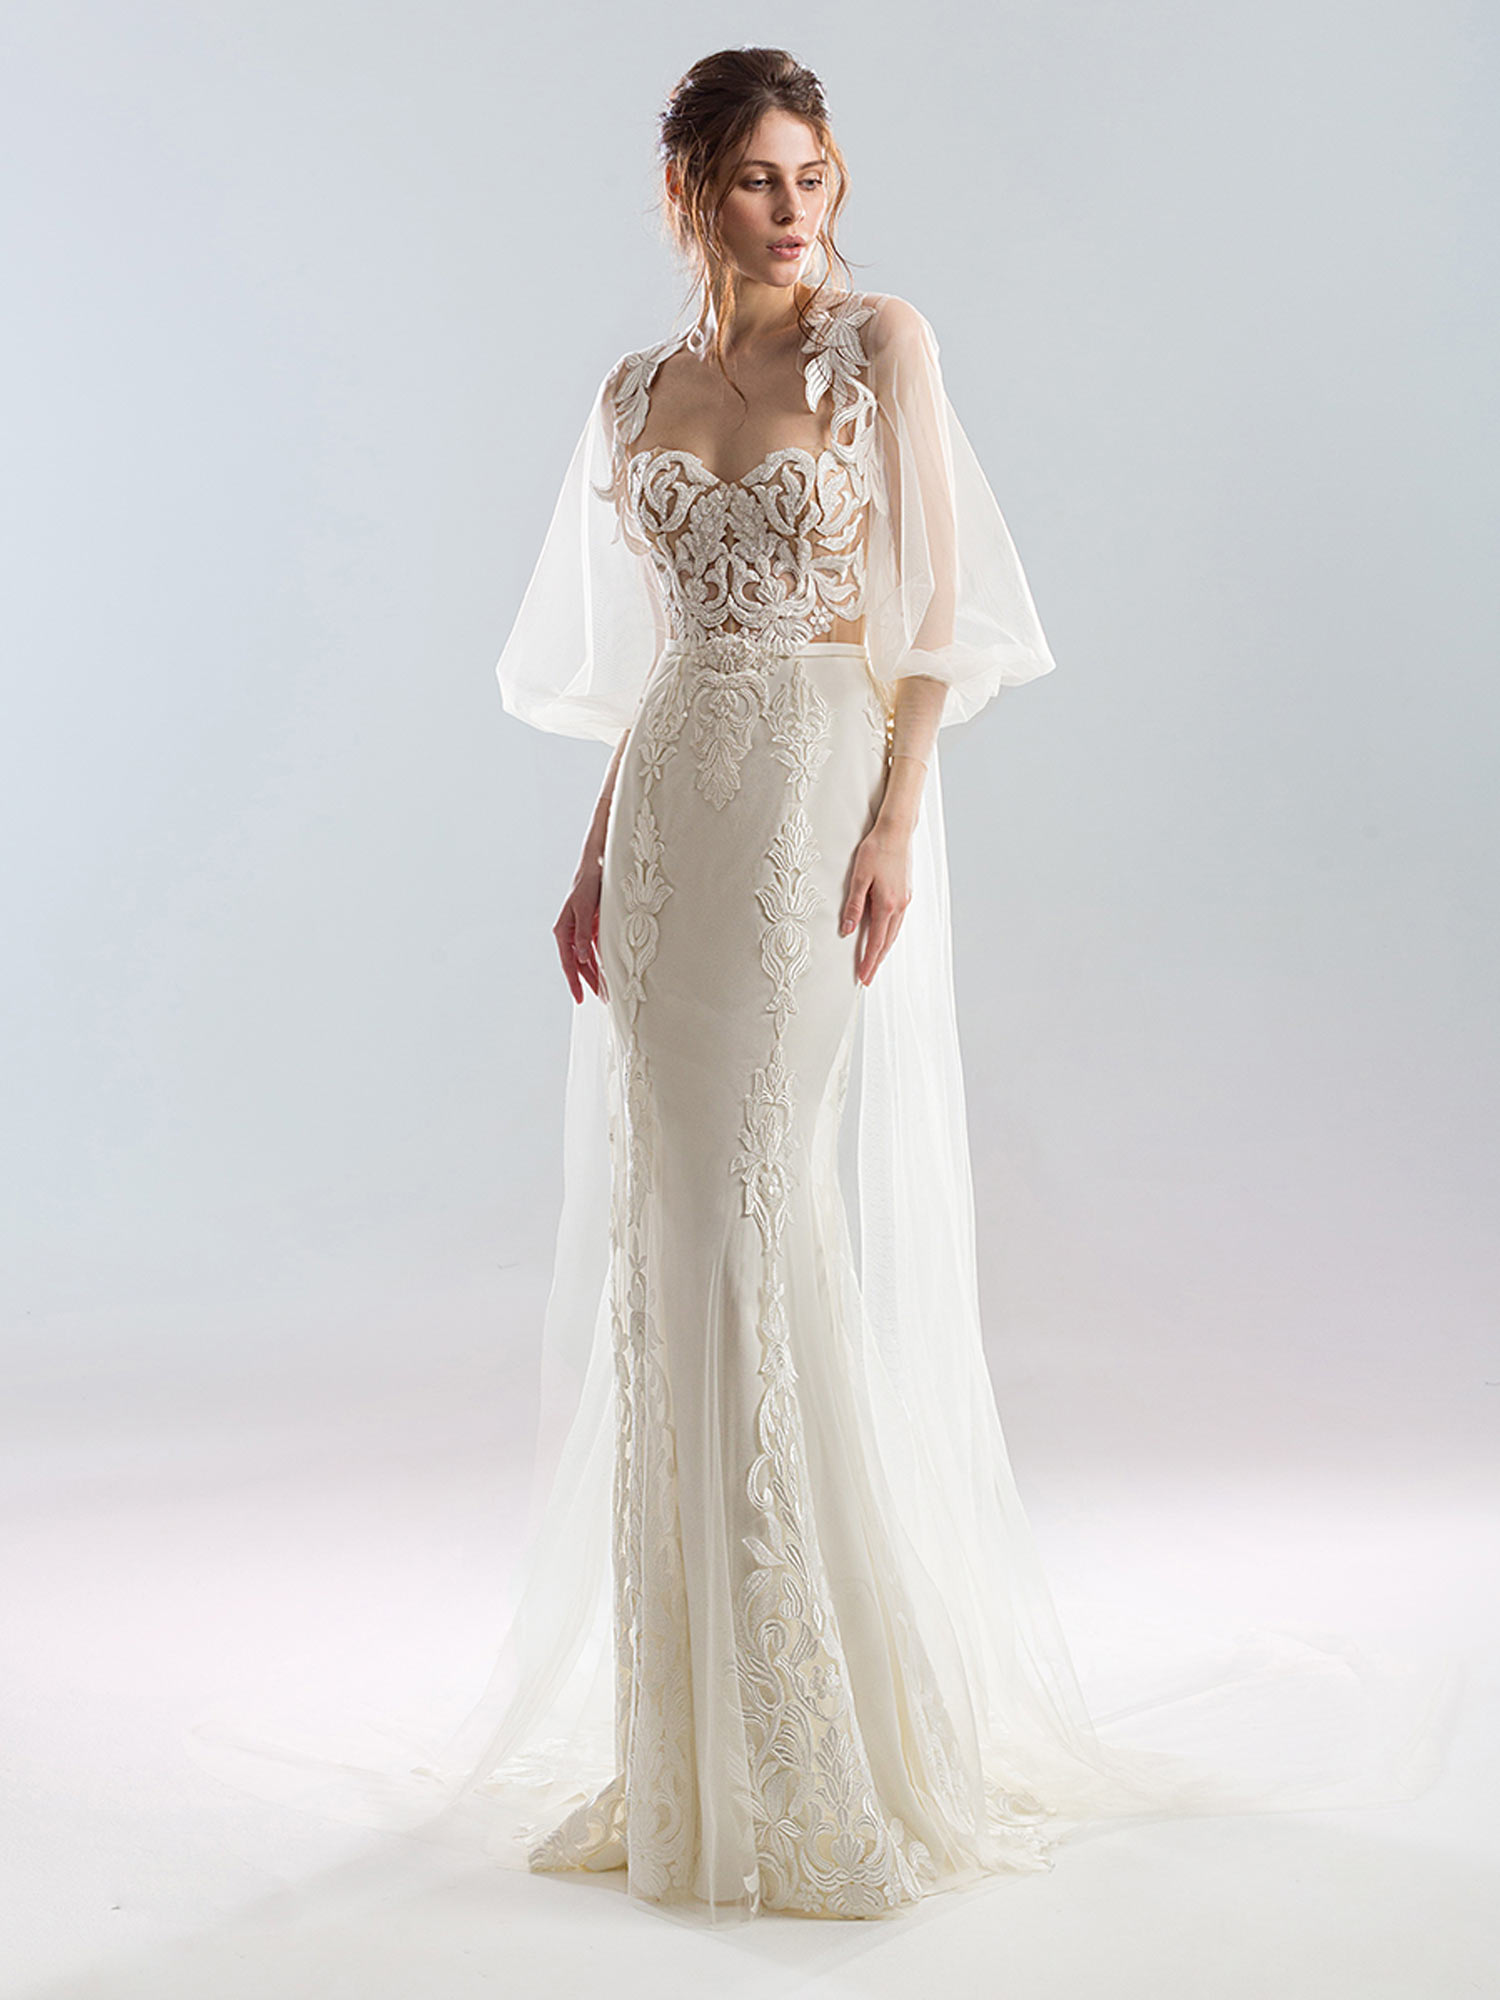 Style #1910L, available in ivory; Style #1910-7 (cape), available in ivory